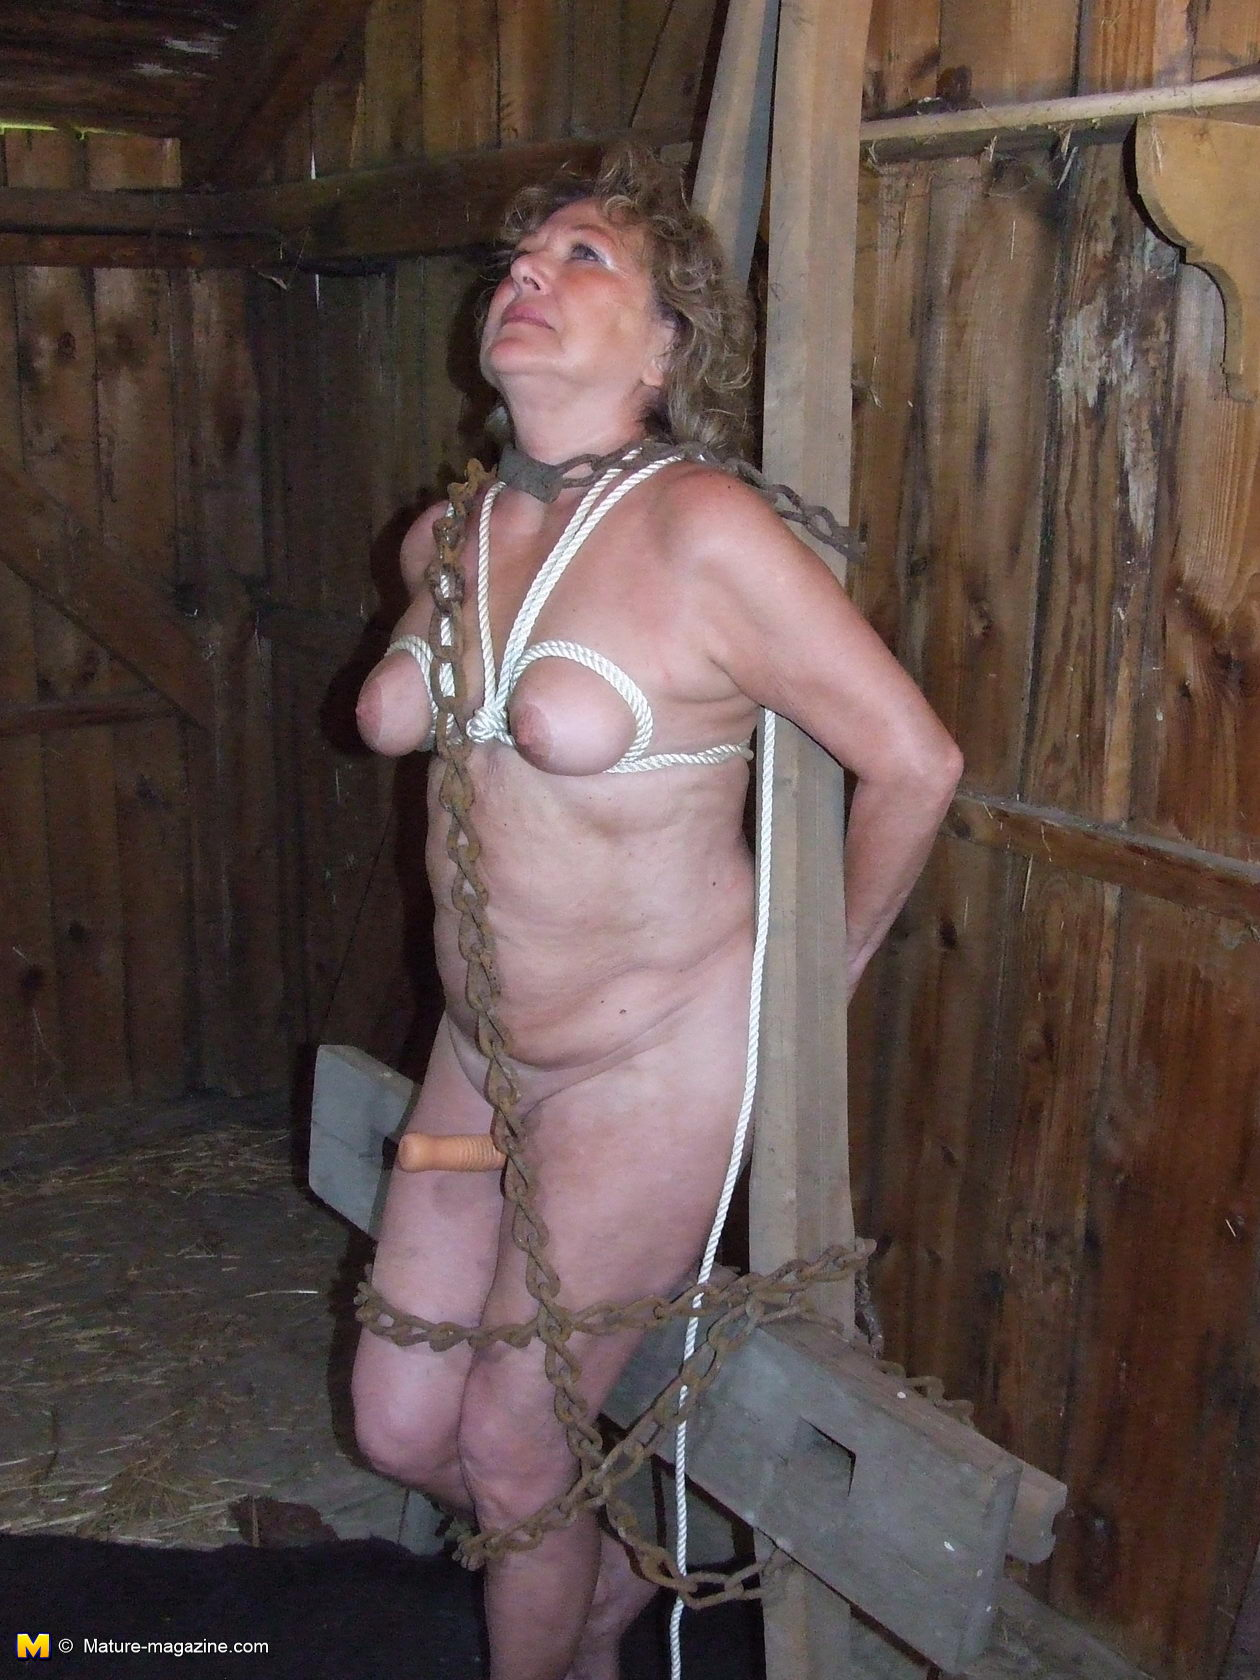 Very matures in bondage photos was there